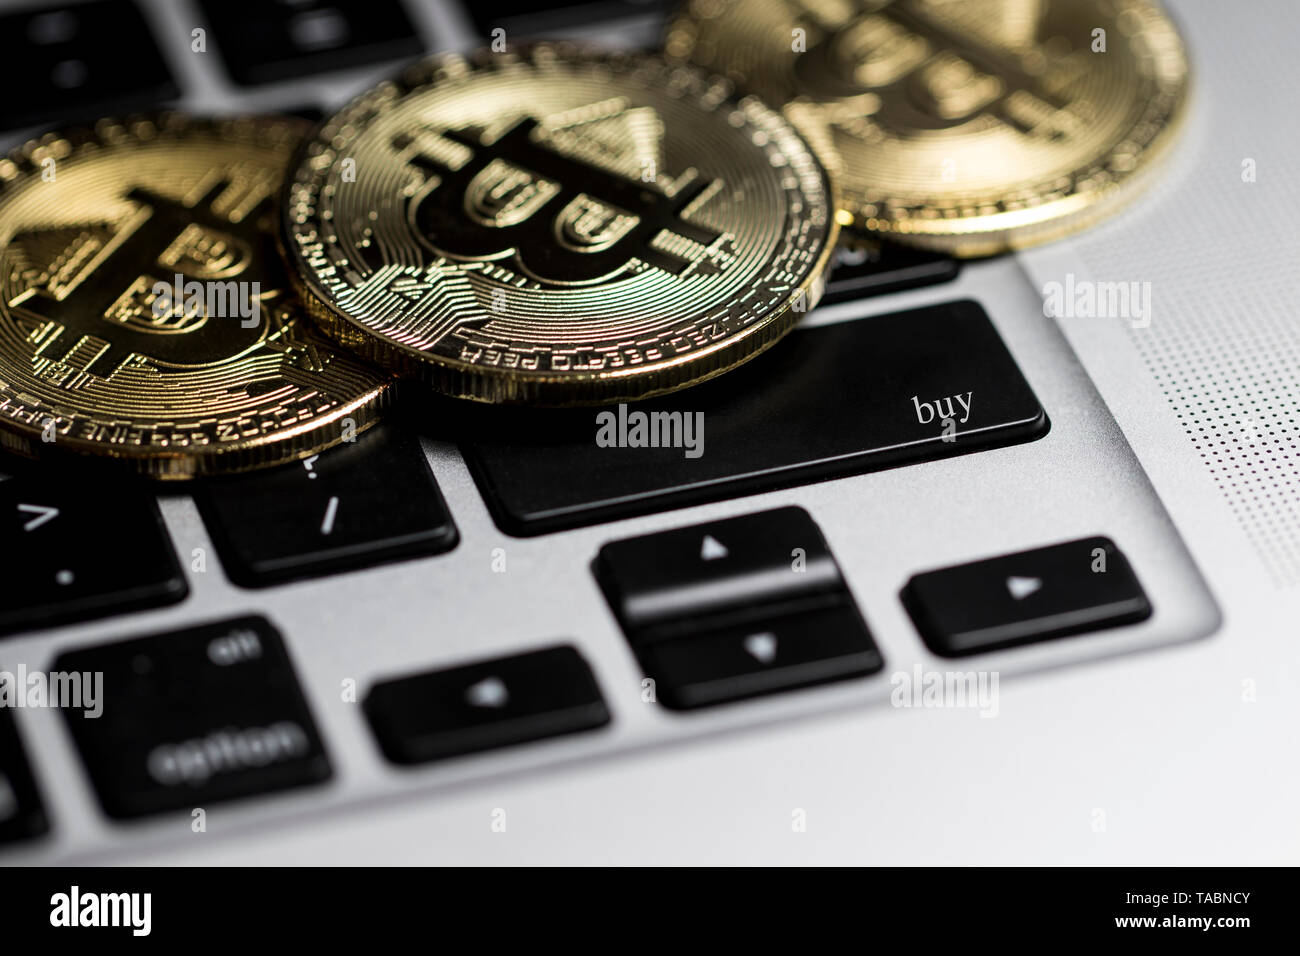 Crypto currencies buying and selling. Computer keyboard with Bitcoin coins on in. Buying and investing in digital currencies. Stock Photo